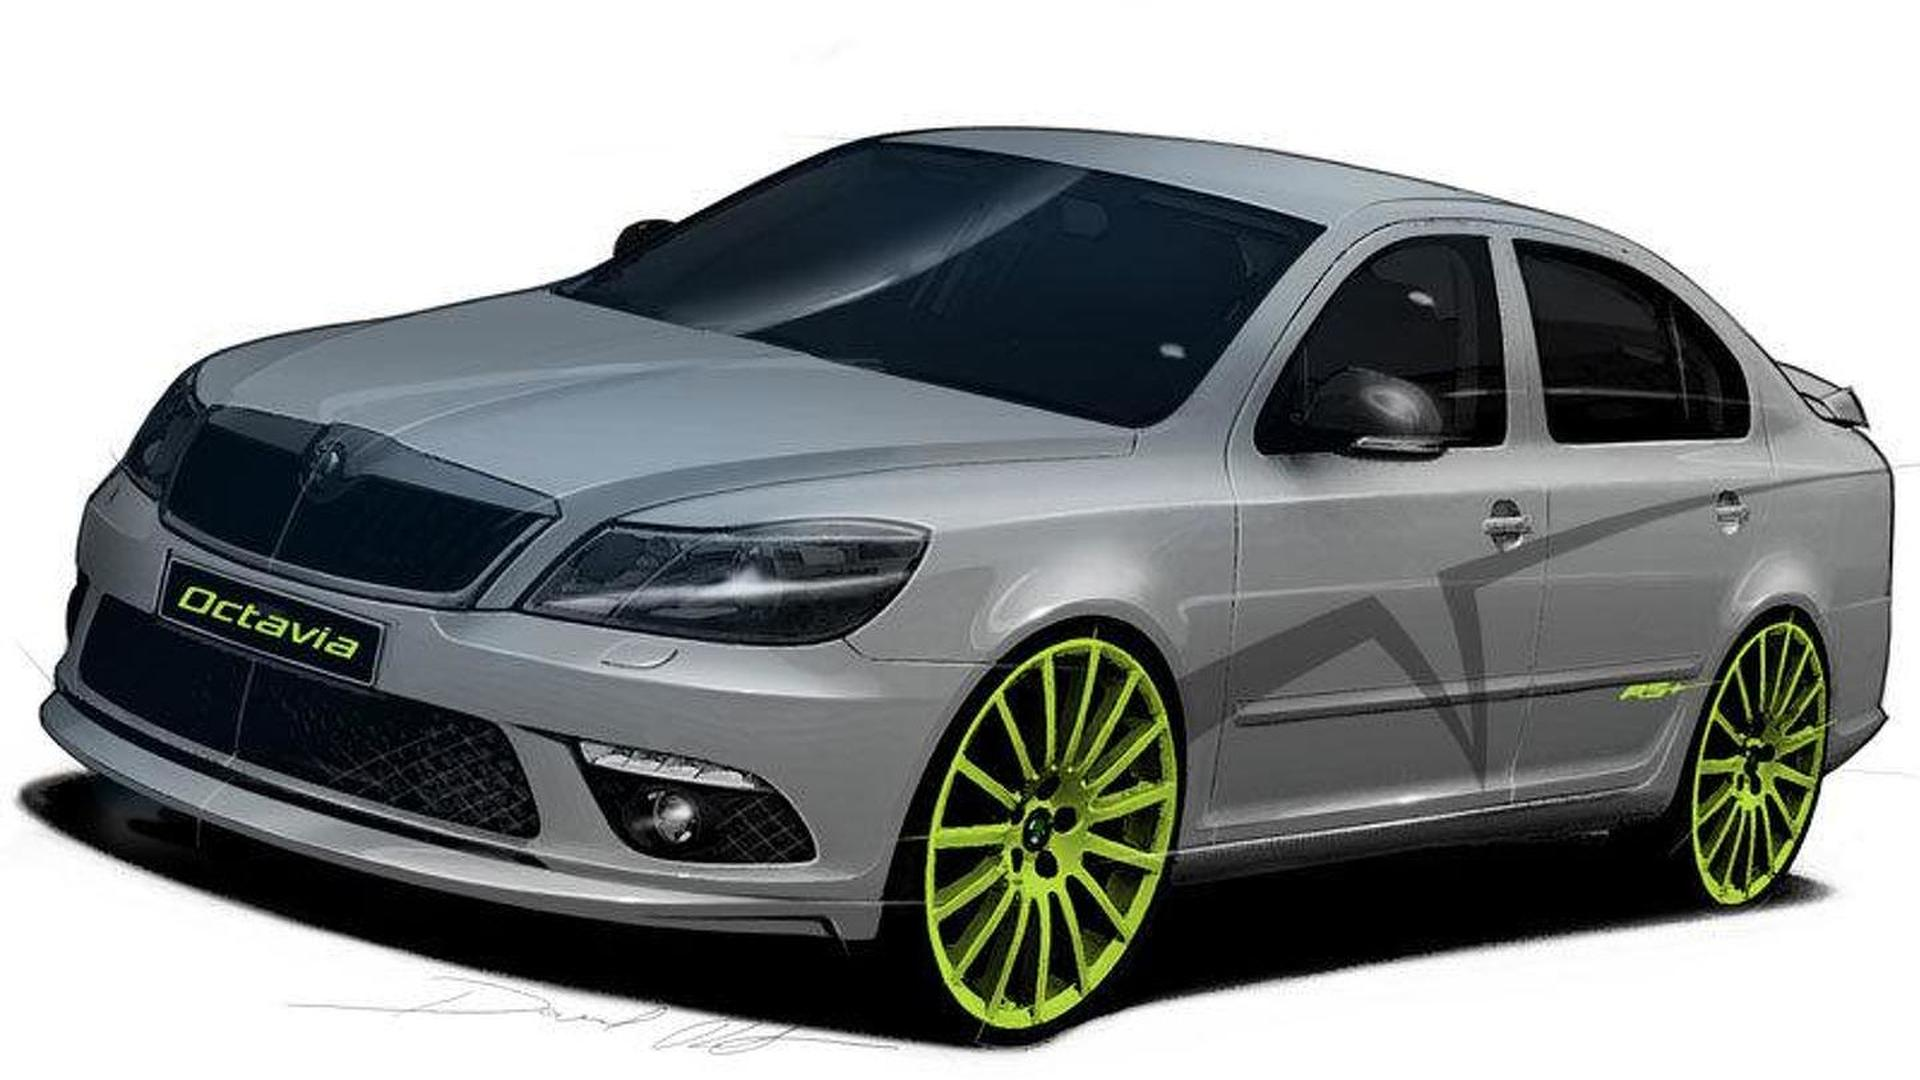 Skoda Fabia Rs And Octavia Rs Tuning Concepts To Be Revealed At Worthersee 2010